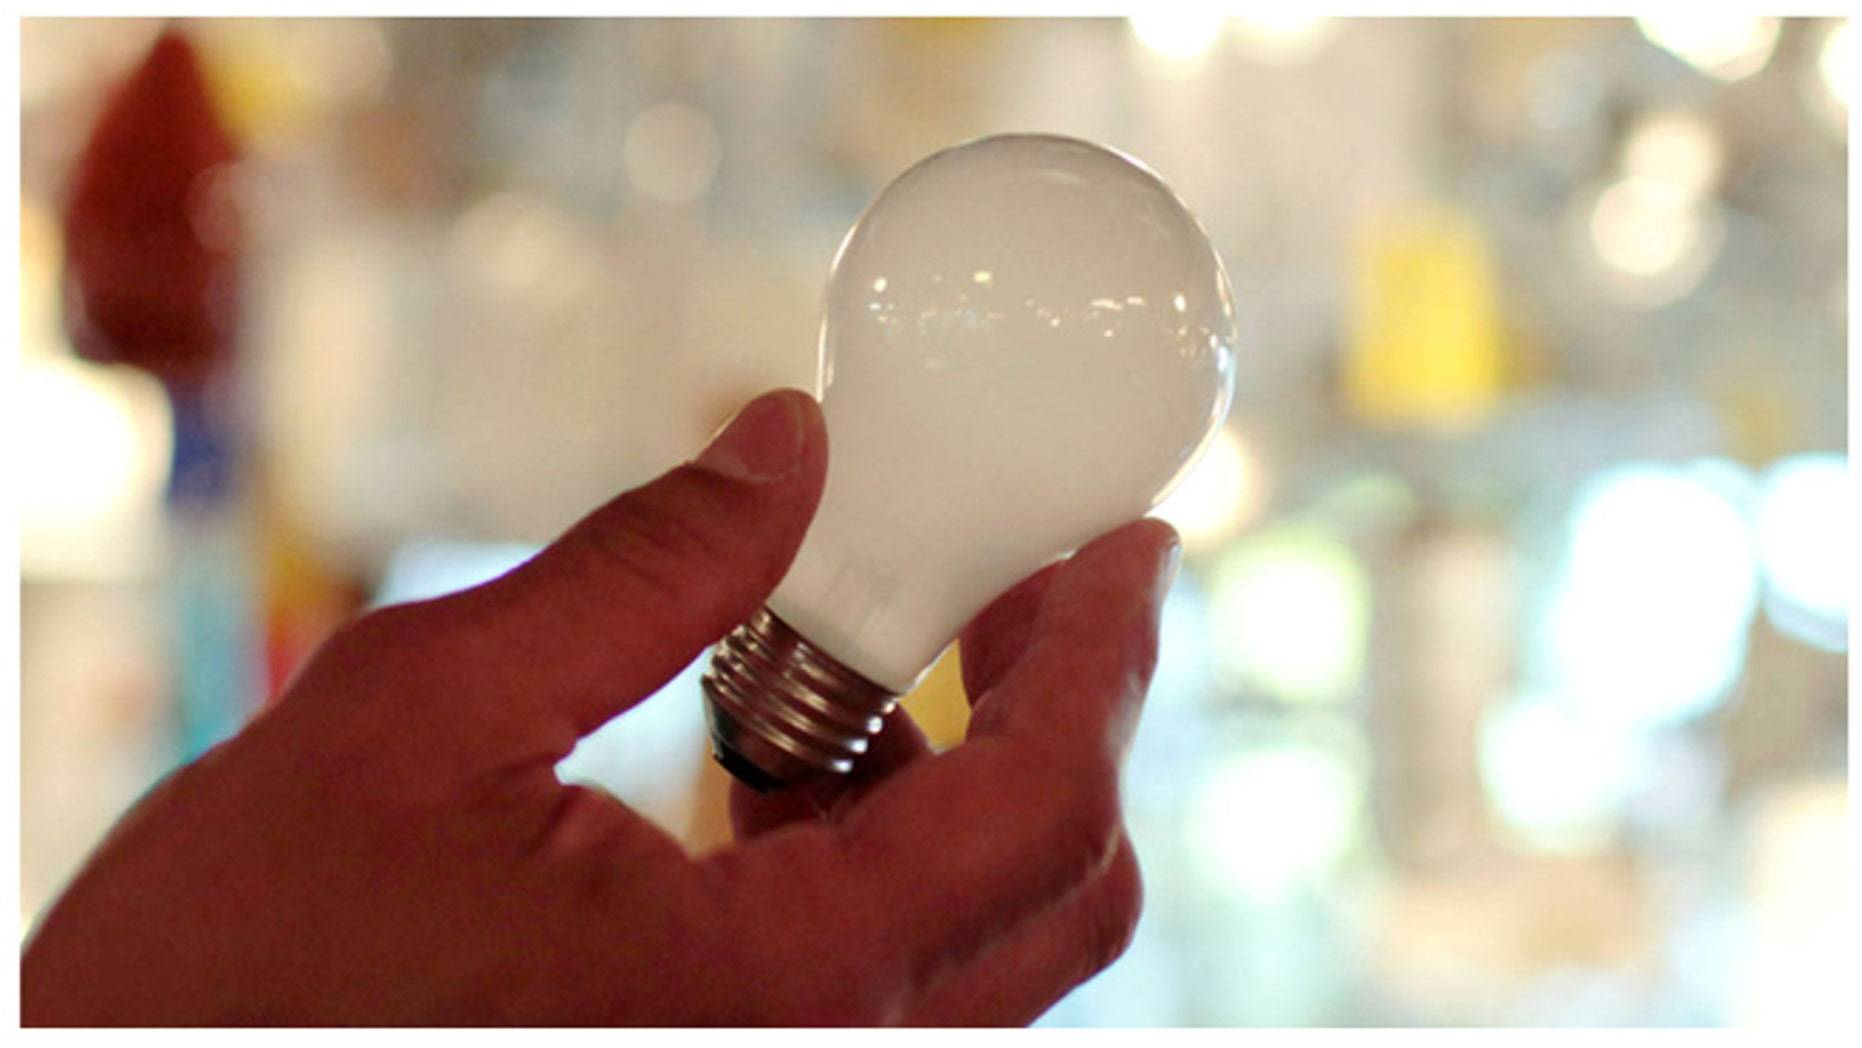 A 100-watt incandescent light bulb seen at Royal Lighting in Los Angeles on Jan. 21, 2011 -- before the bulbs were banned by a 2007 law.